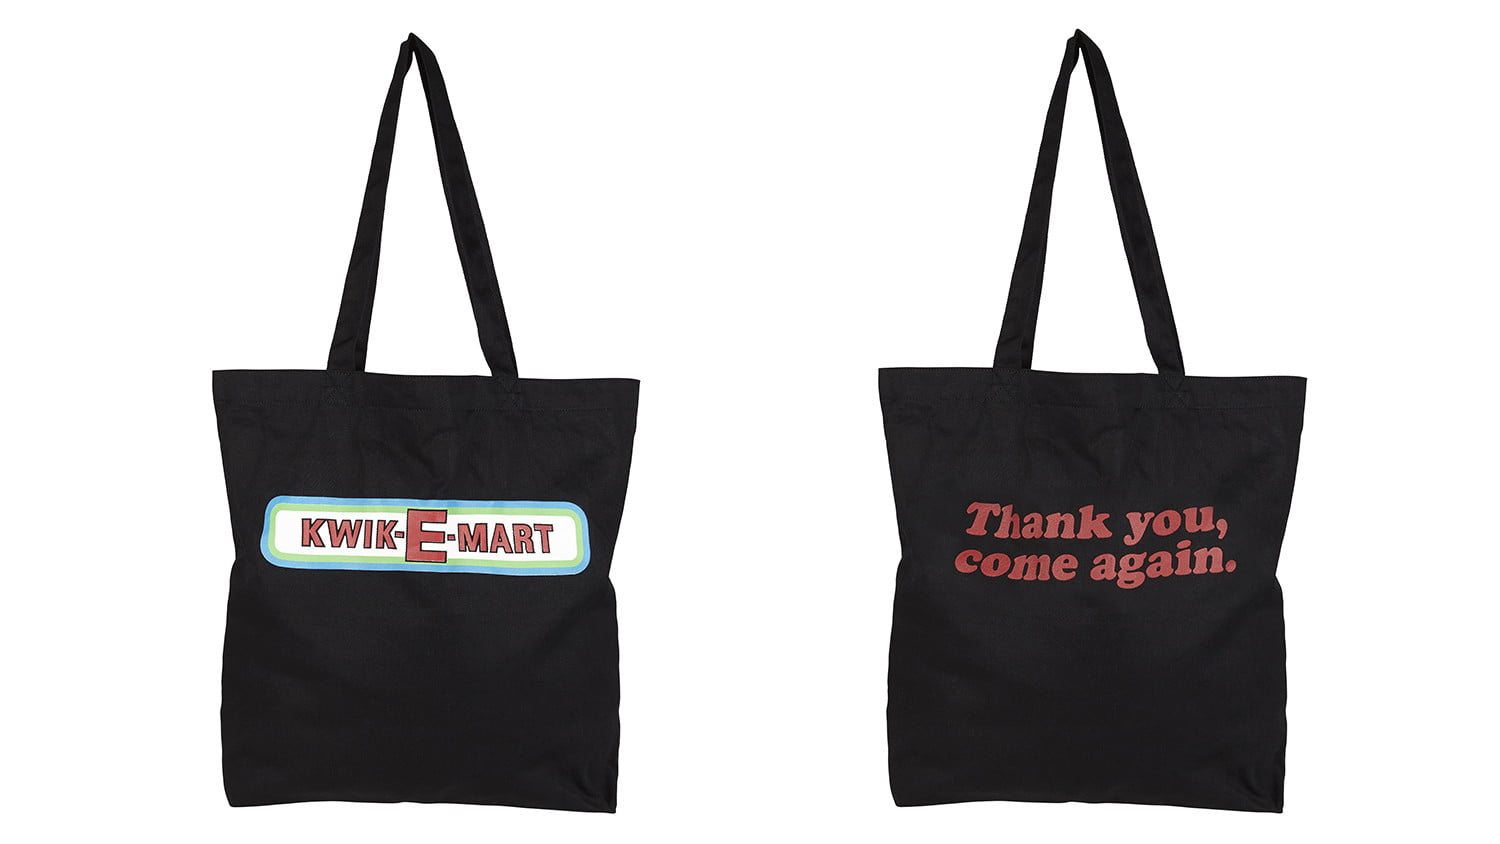 asos x the simpsons collection tote bag